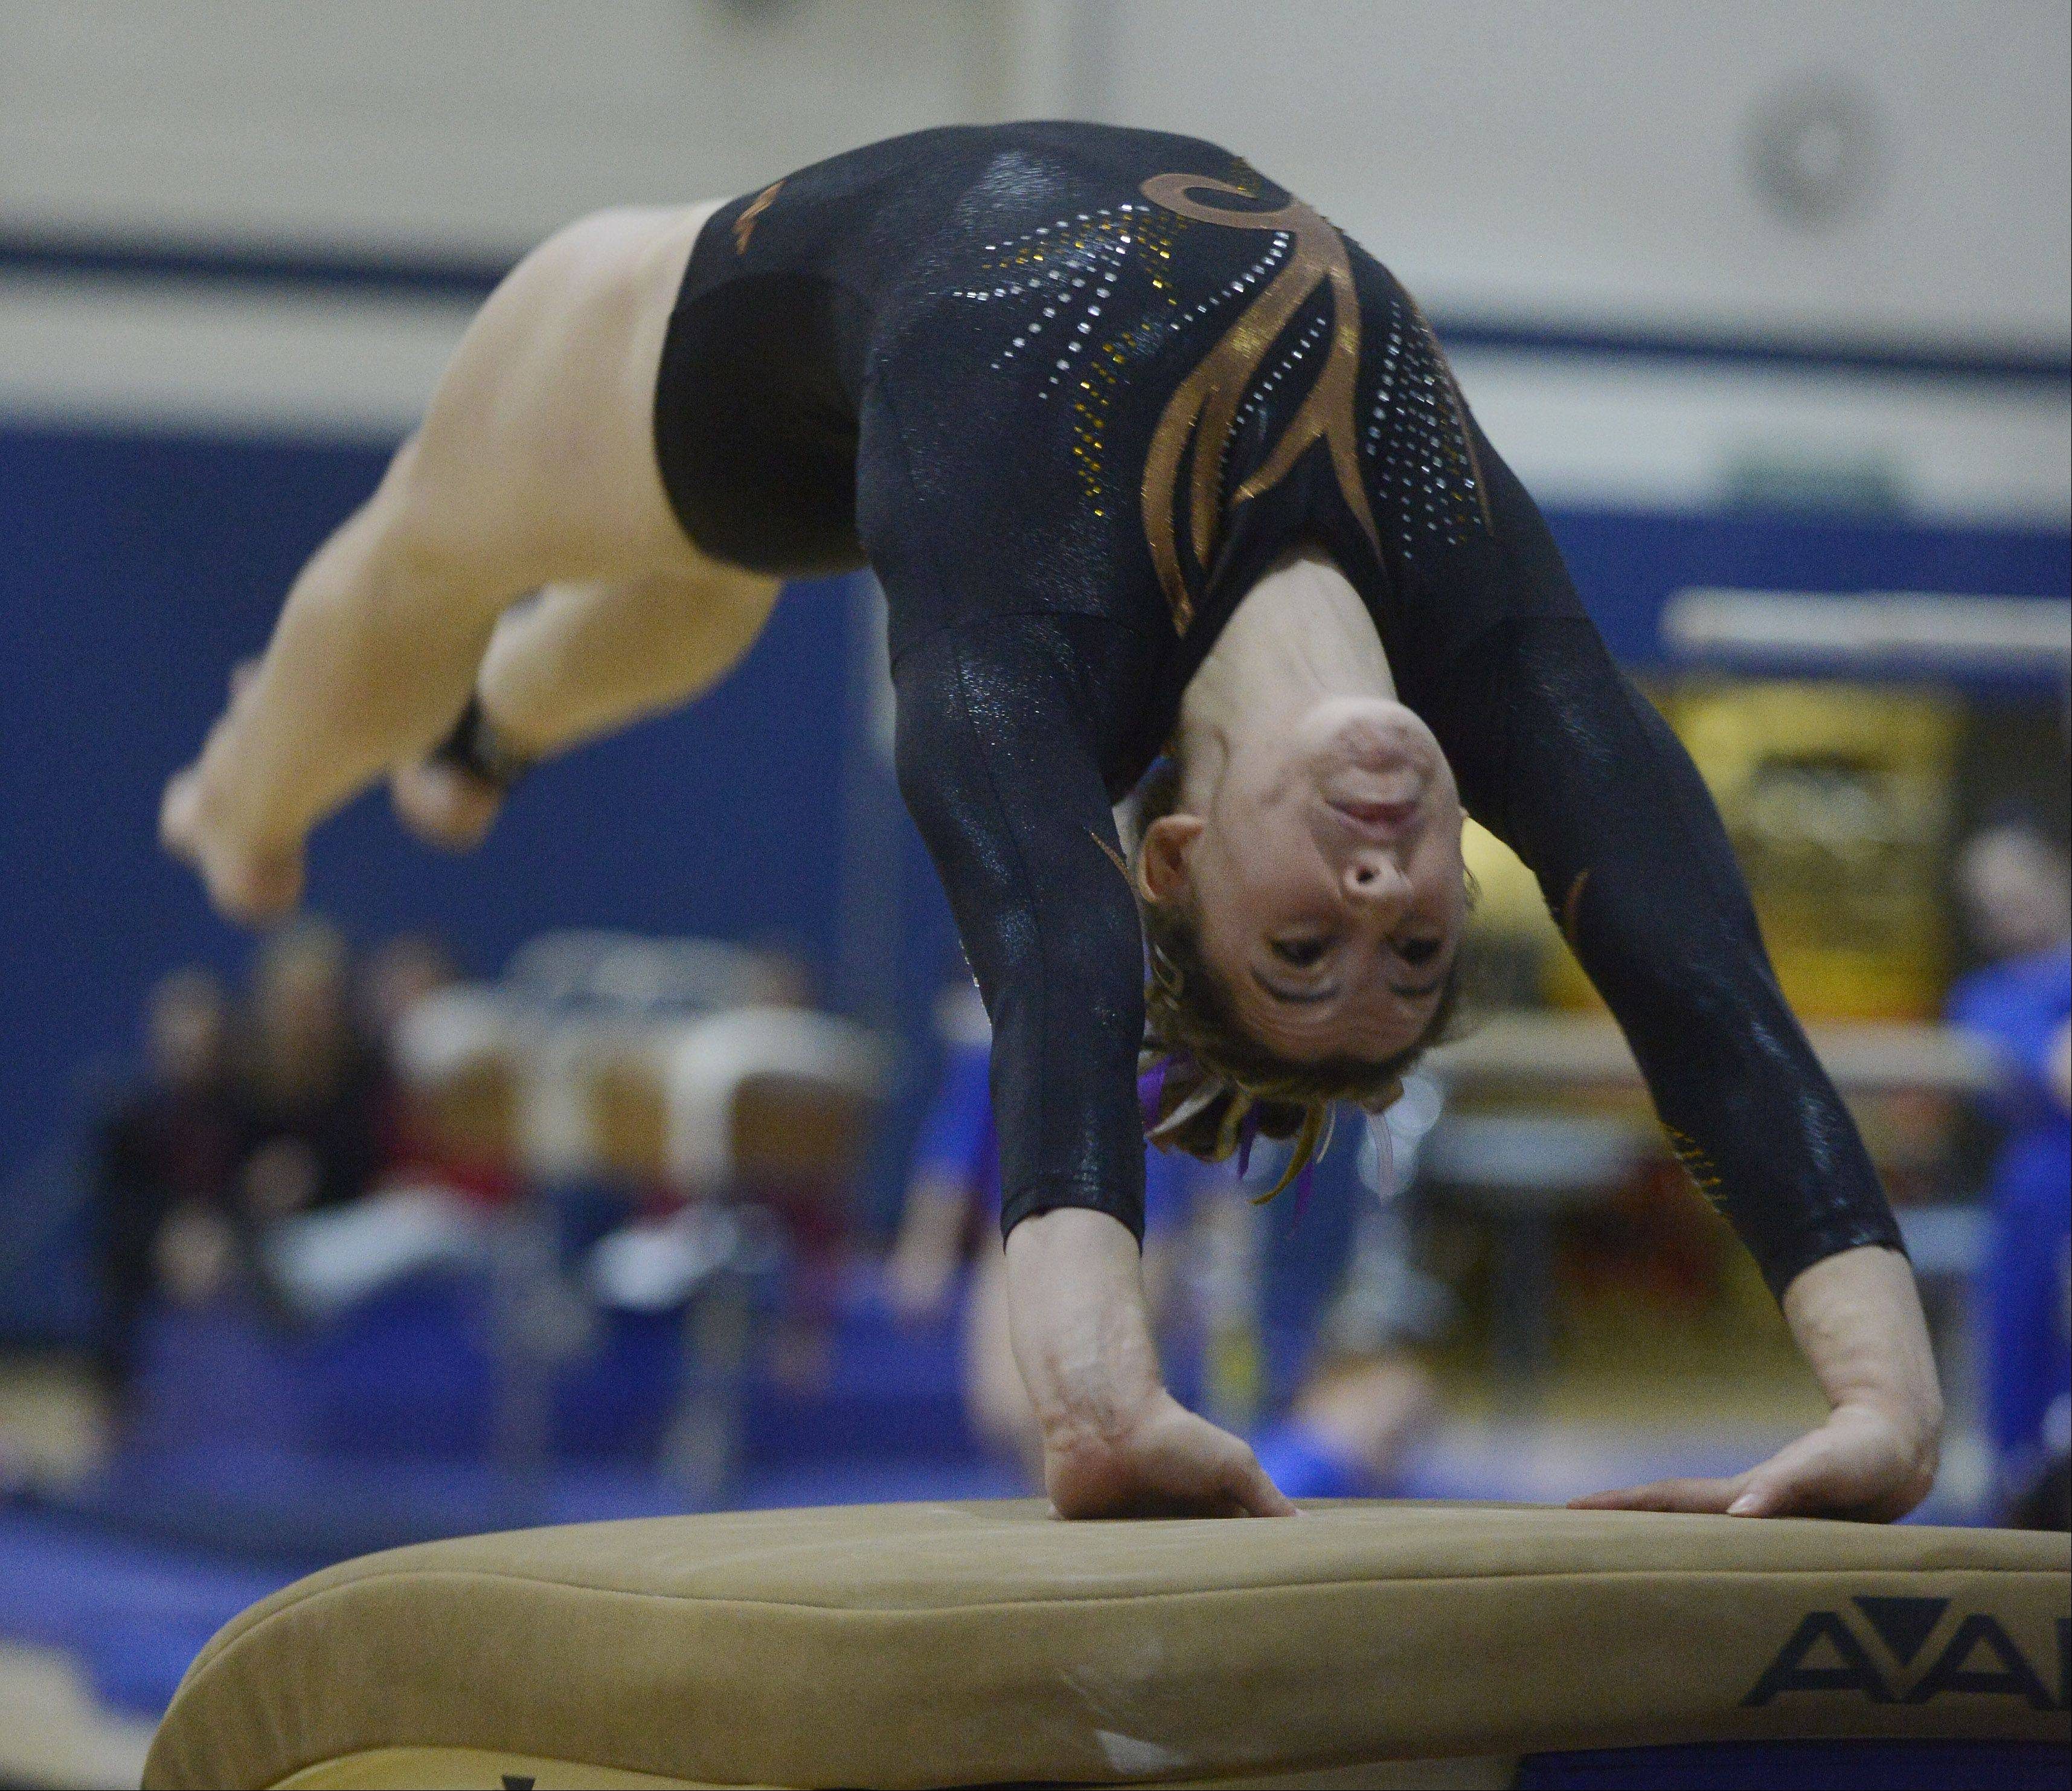 Carmel�s Lauren Feely competes on the vault during the Conant girls gymnastics invite Saturday. She won the event with a 9.75 and also won the all-around to lead the Corsairs to the team title.